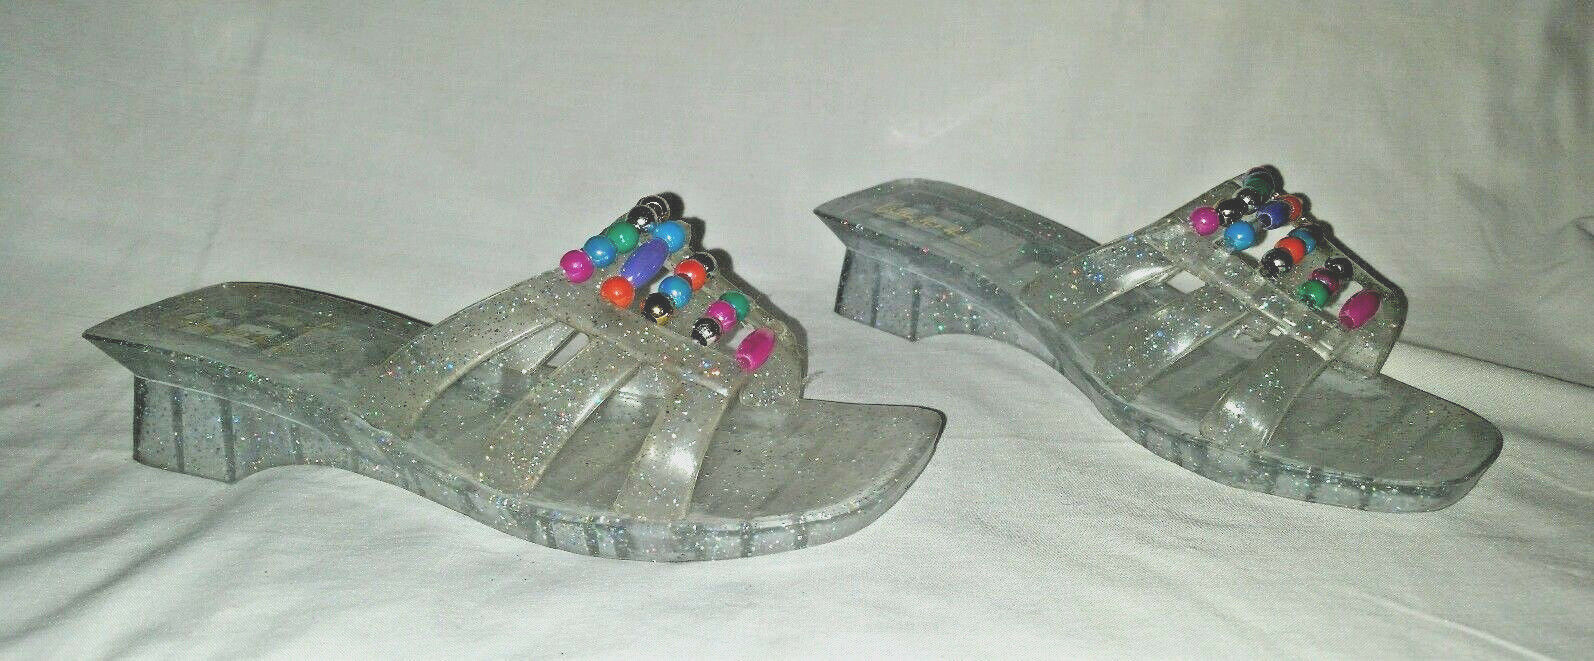 Adorable Anthony Mark Beaded Hankins Size 7 Slides Sparkly Jelly Beaded Mark Upper Sandals fd6cea